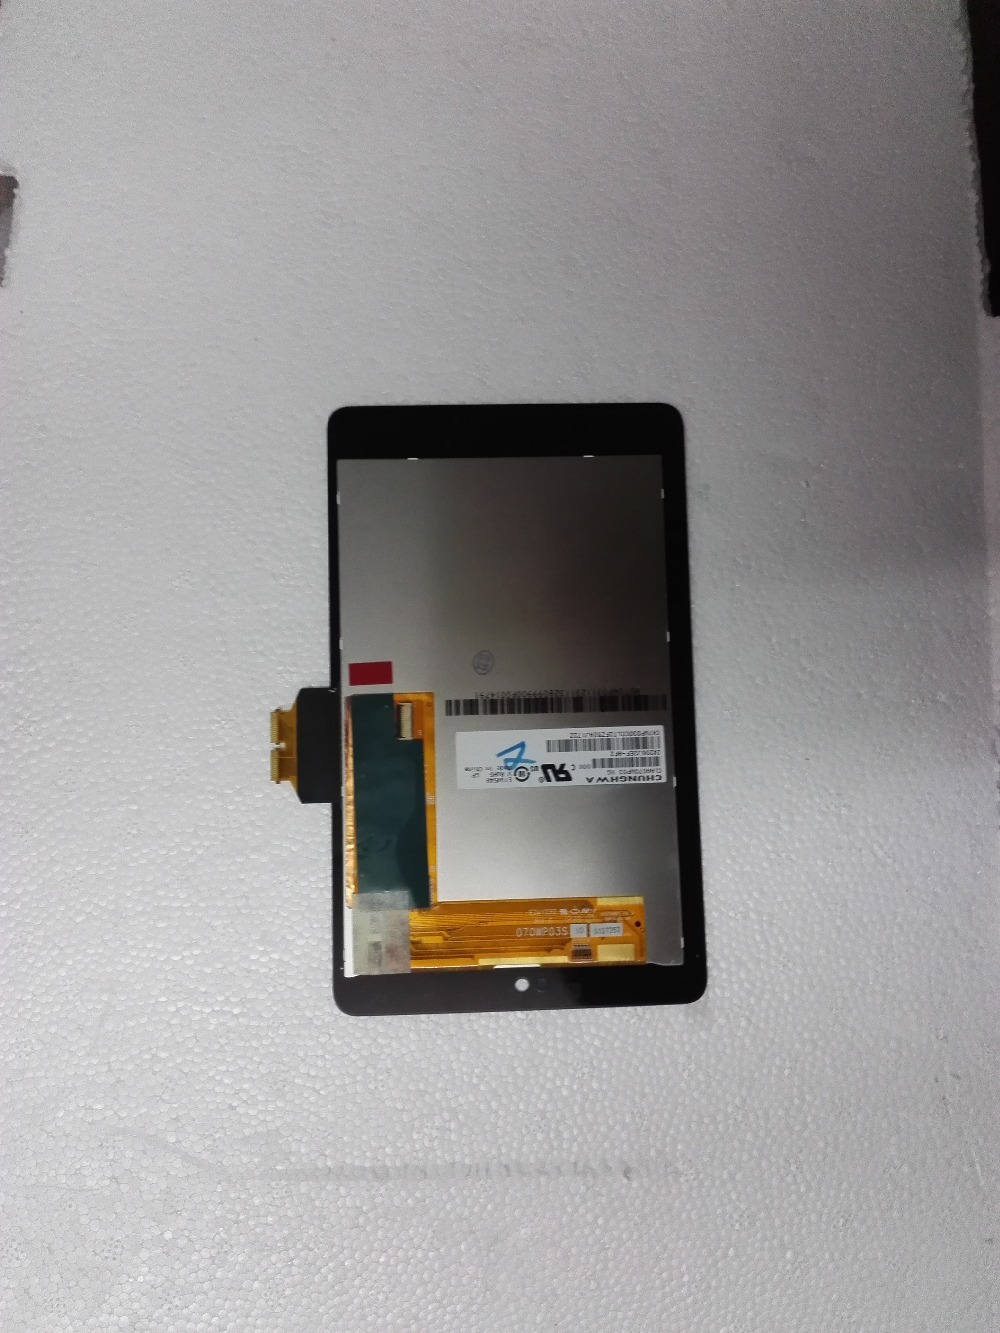 For Asus Google Nexus 7 1st generation LCD Display Touch Screen Digitizer Assembly replacement